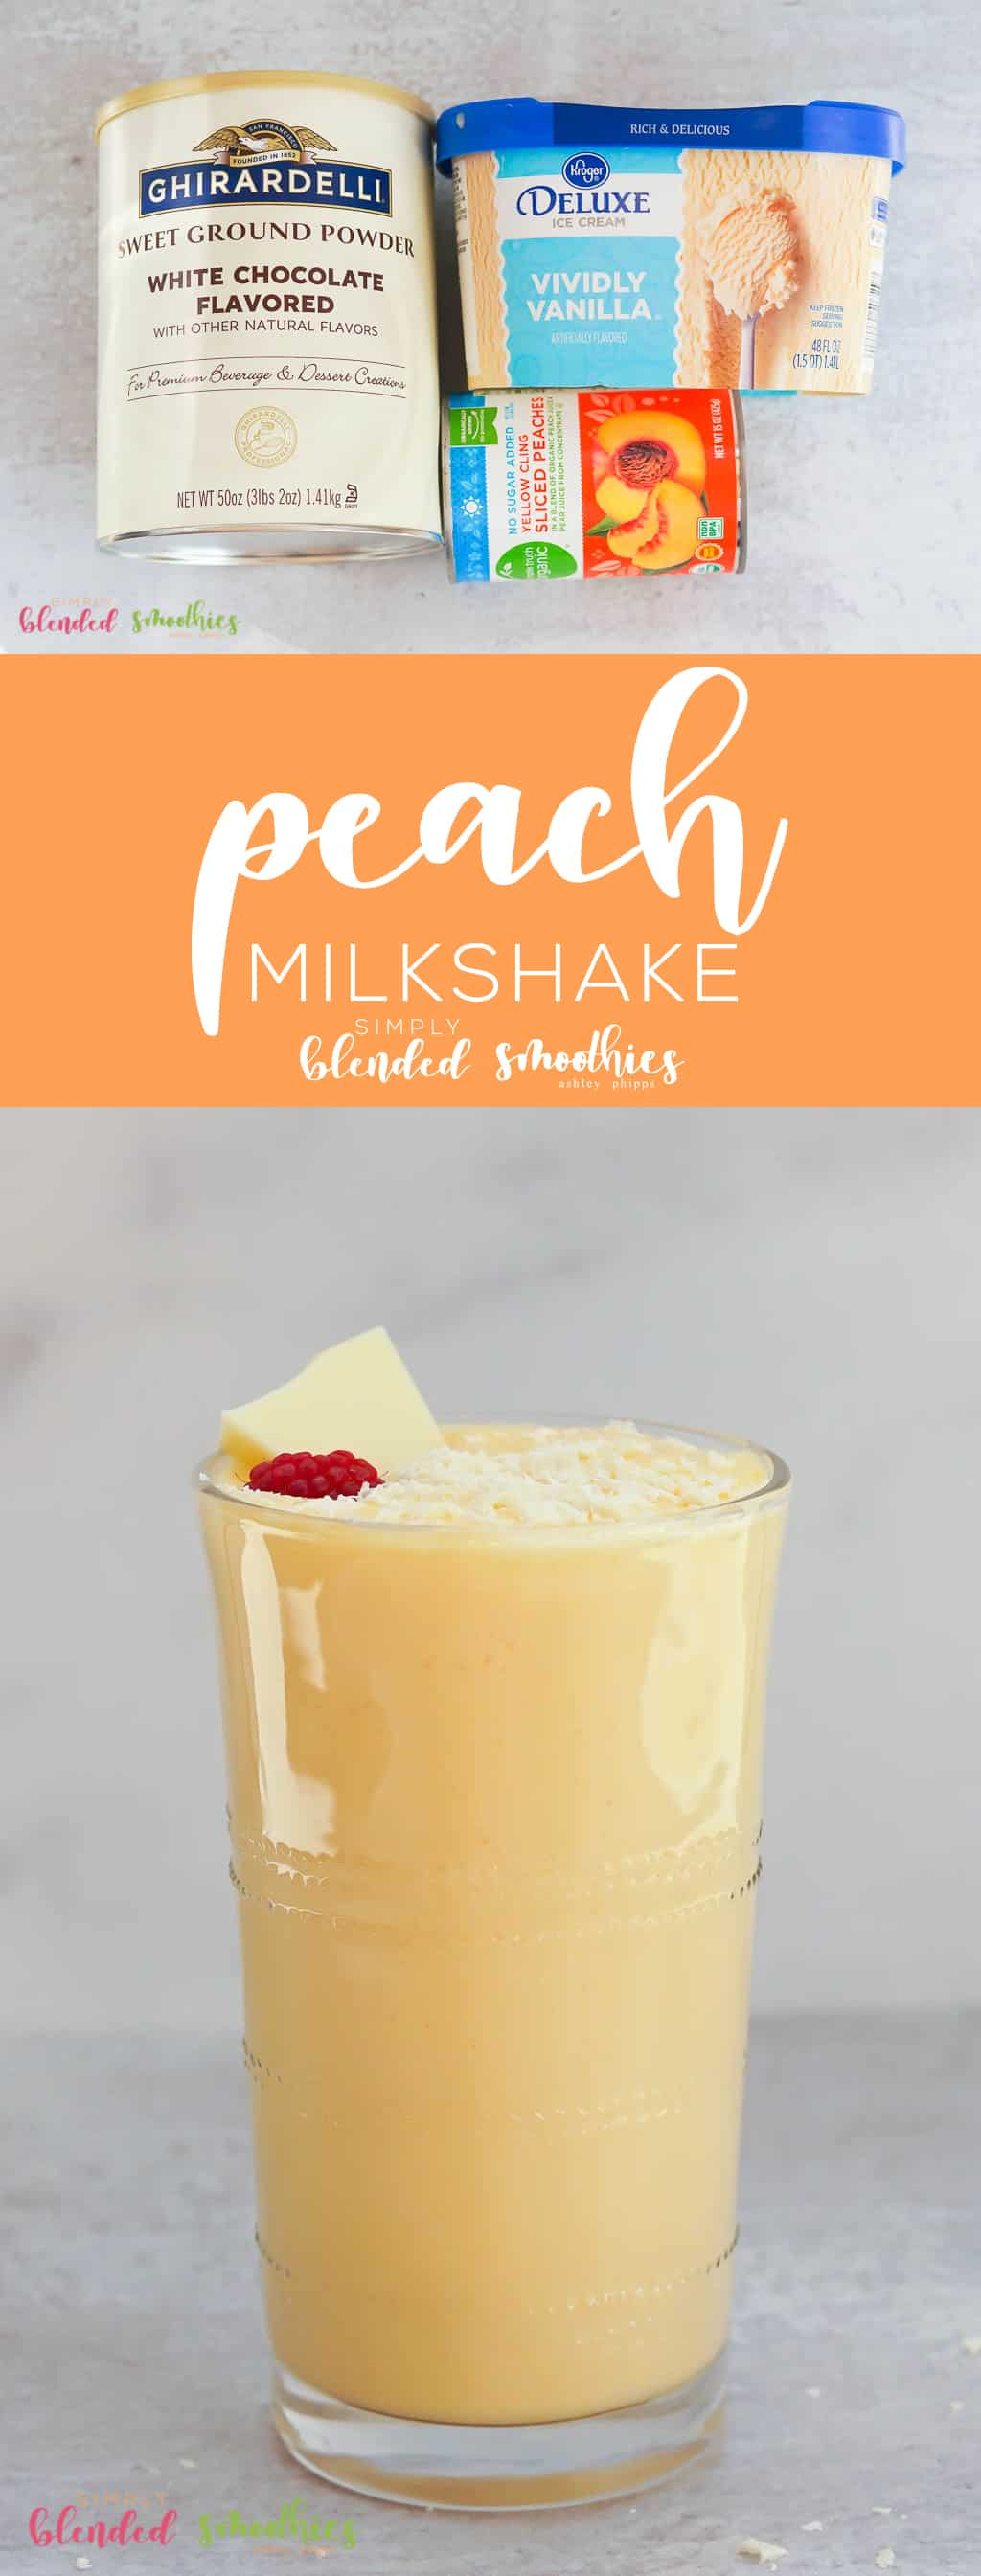 This Peach Milkshake is a deliciously sweet treat that rivals a Chick-Fil-A peach milkshake because the secret ingredient makes this irresistibly delicious